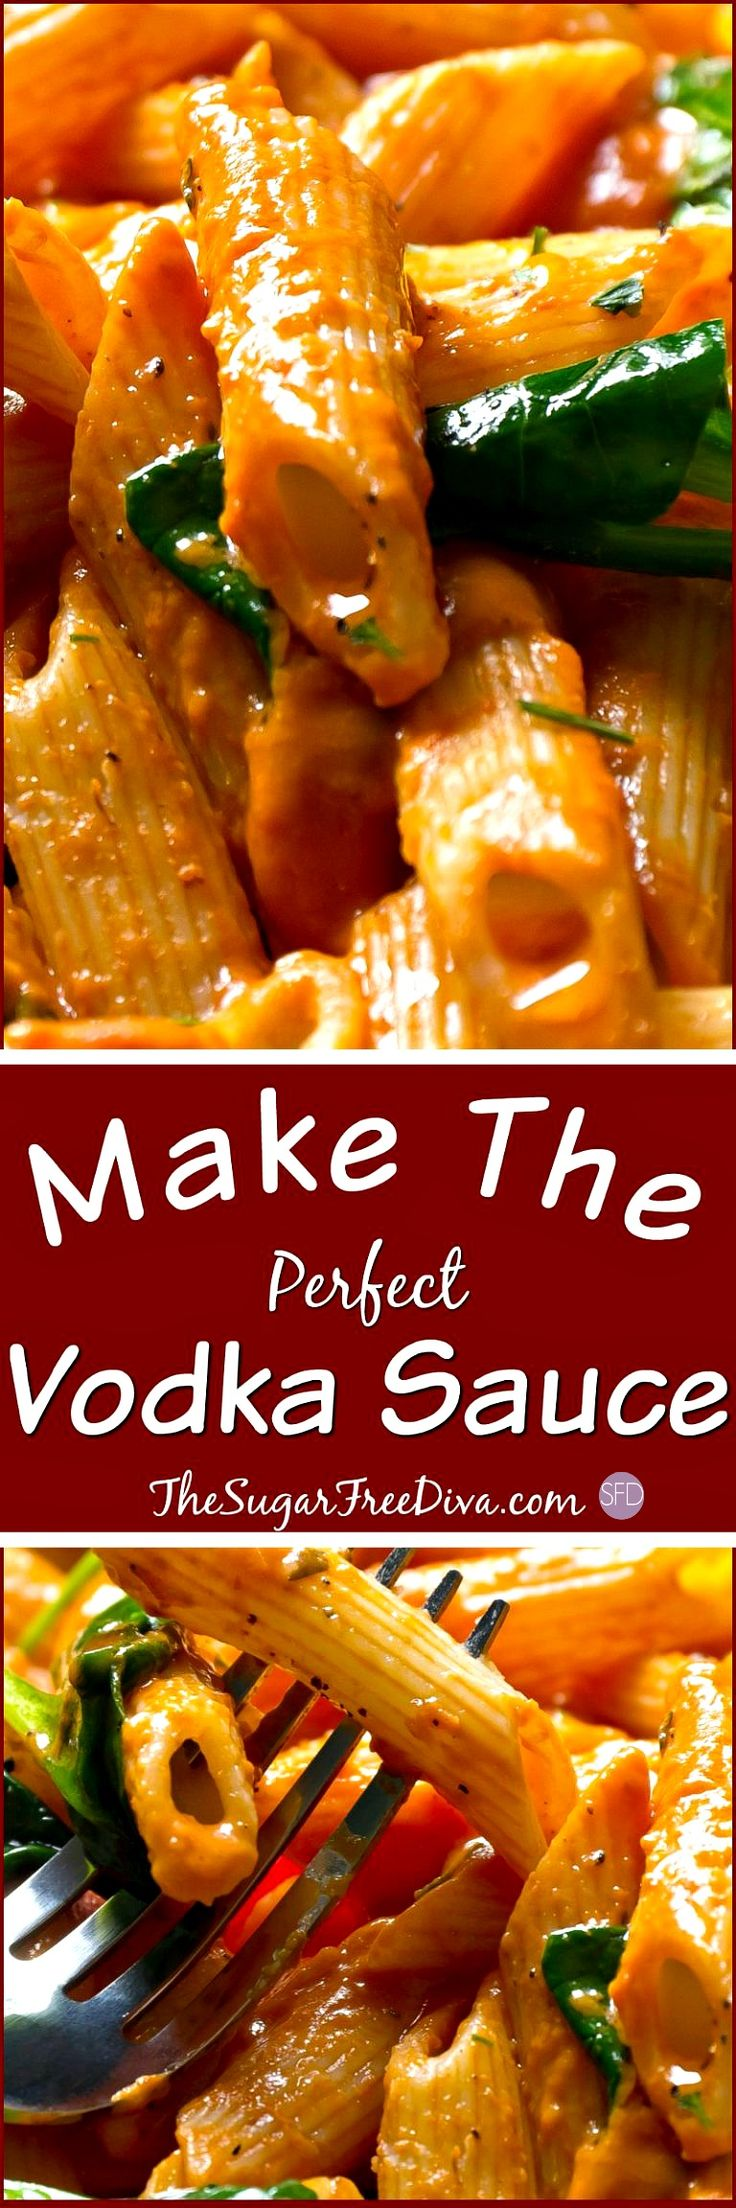 This is the best pasta sauce ever! It had VODKA in it! #pasta #vodka #recipe #pasta #dinner #best #food